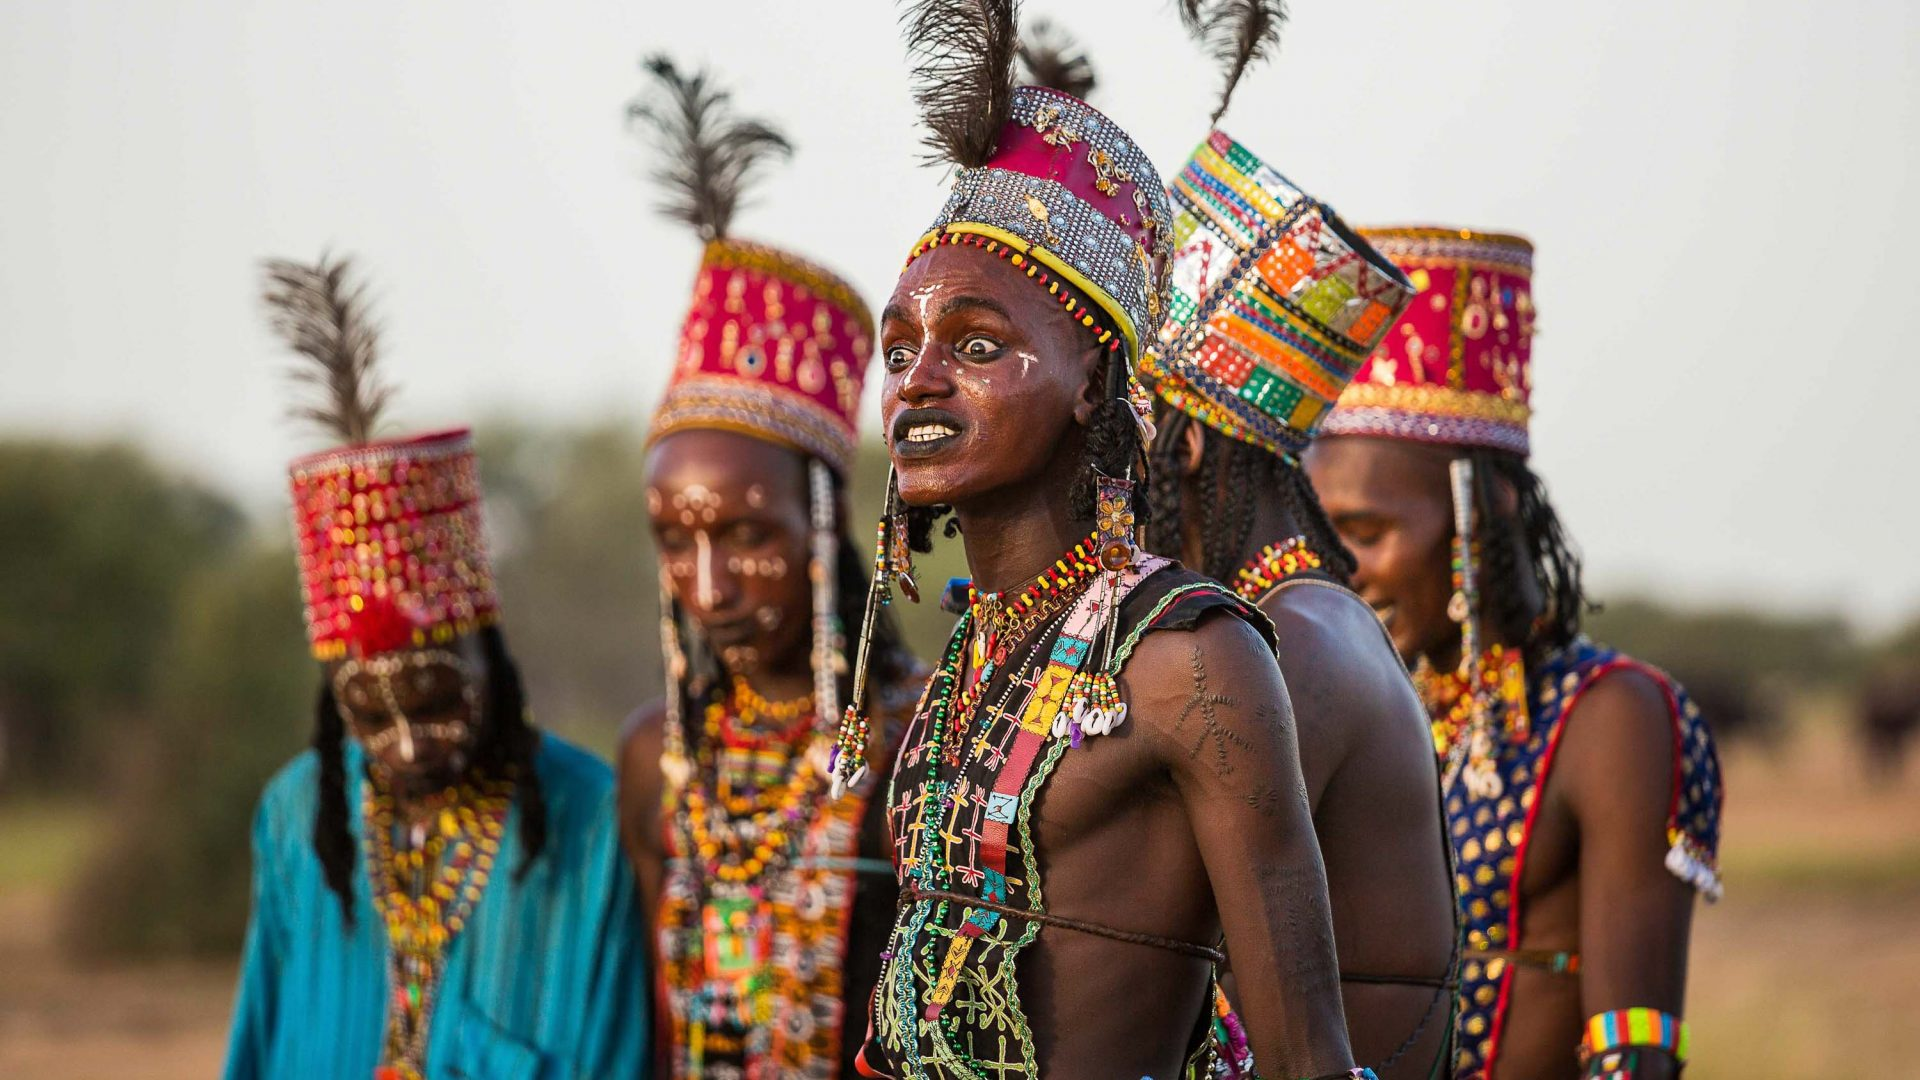 The Wodaabe men grimace during the dance to show off their white teeth. The ostrich feathers in their hats emphasizes their height.